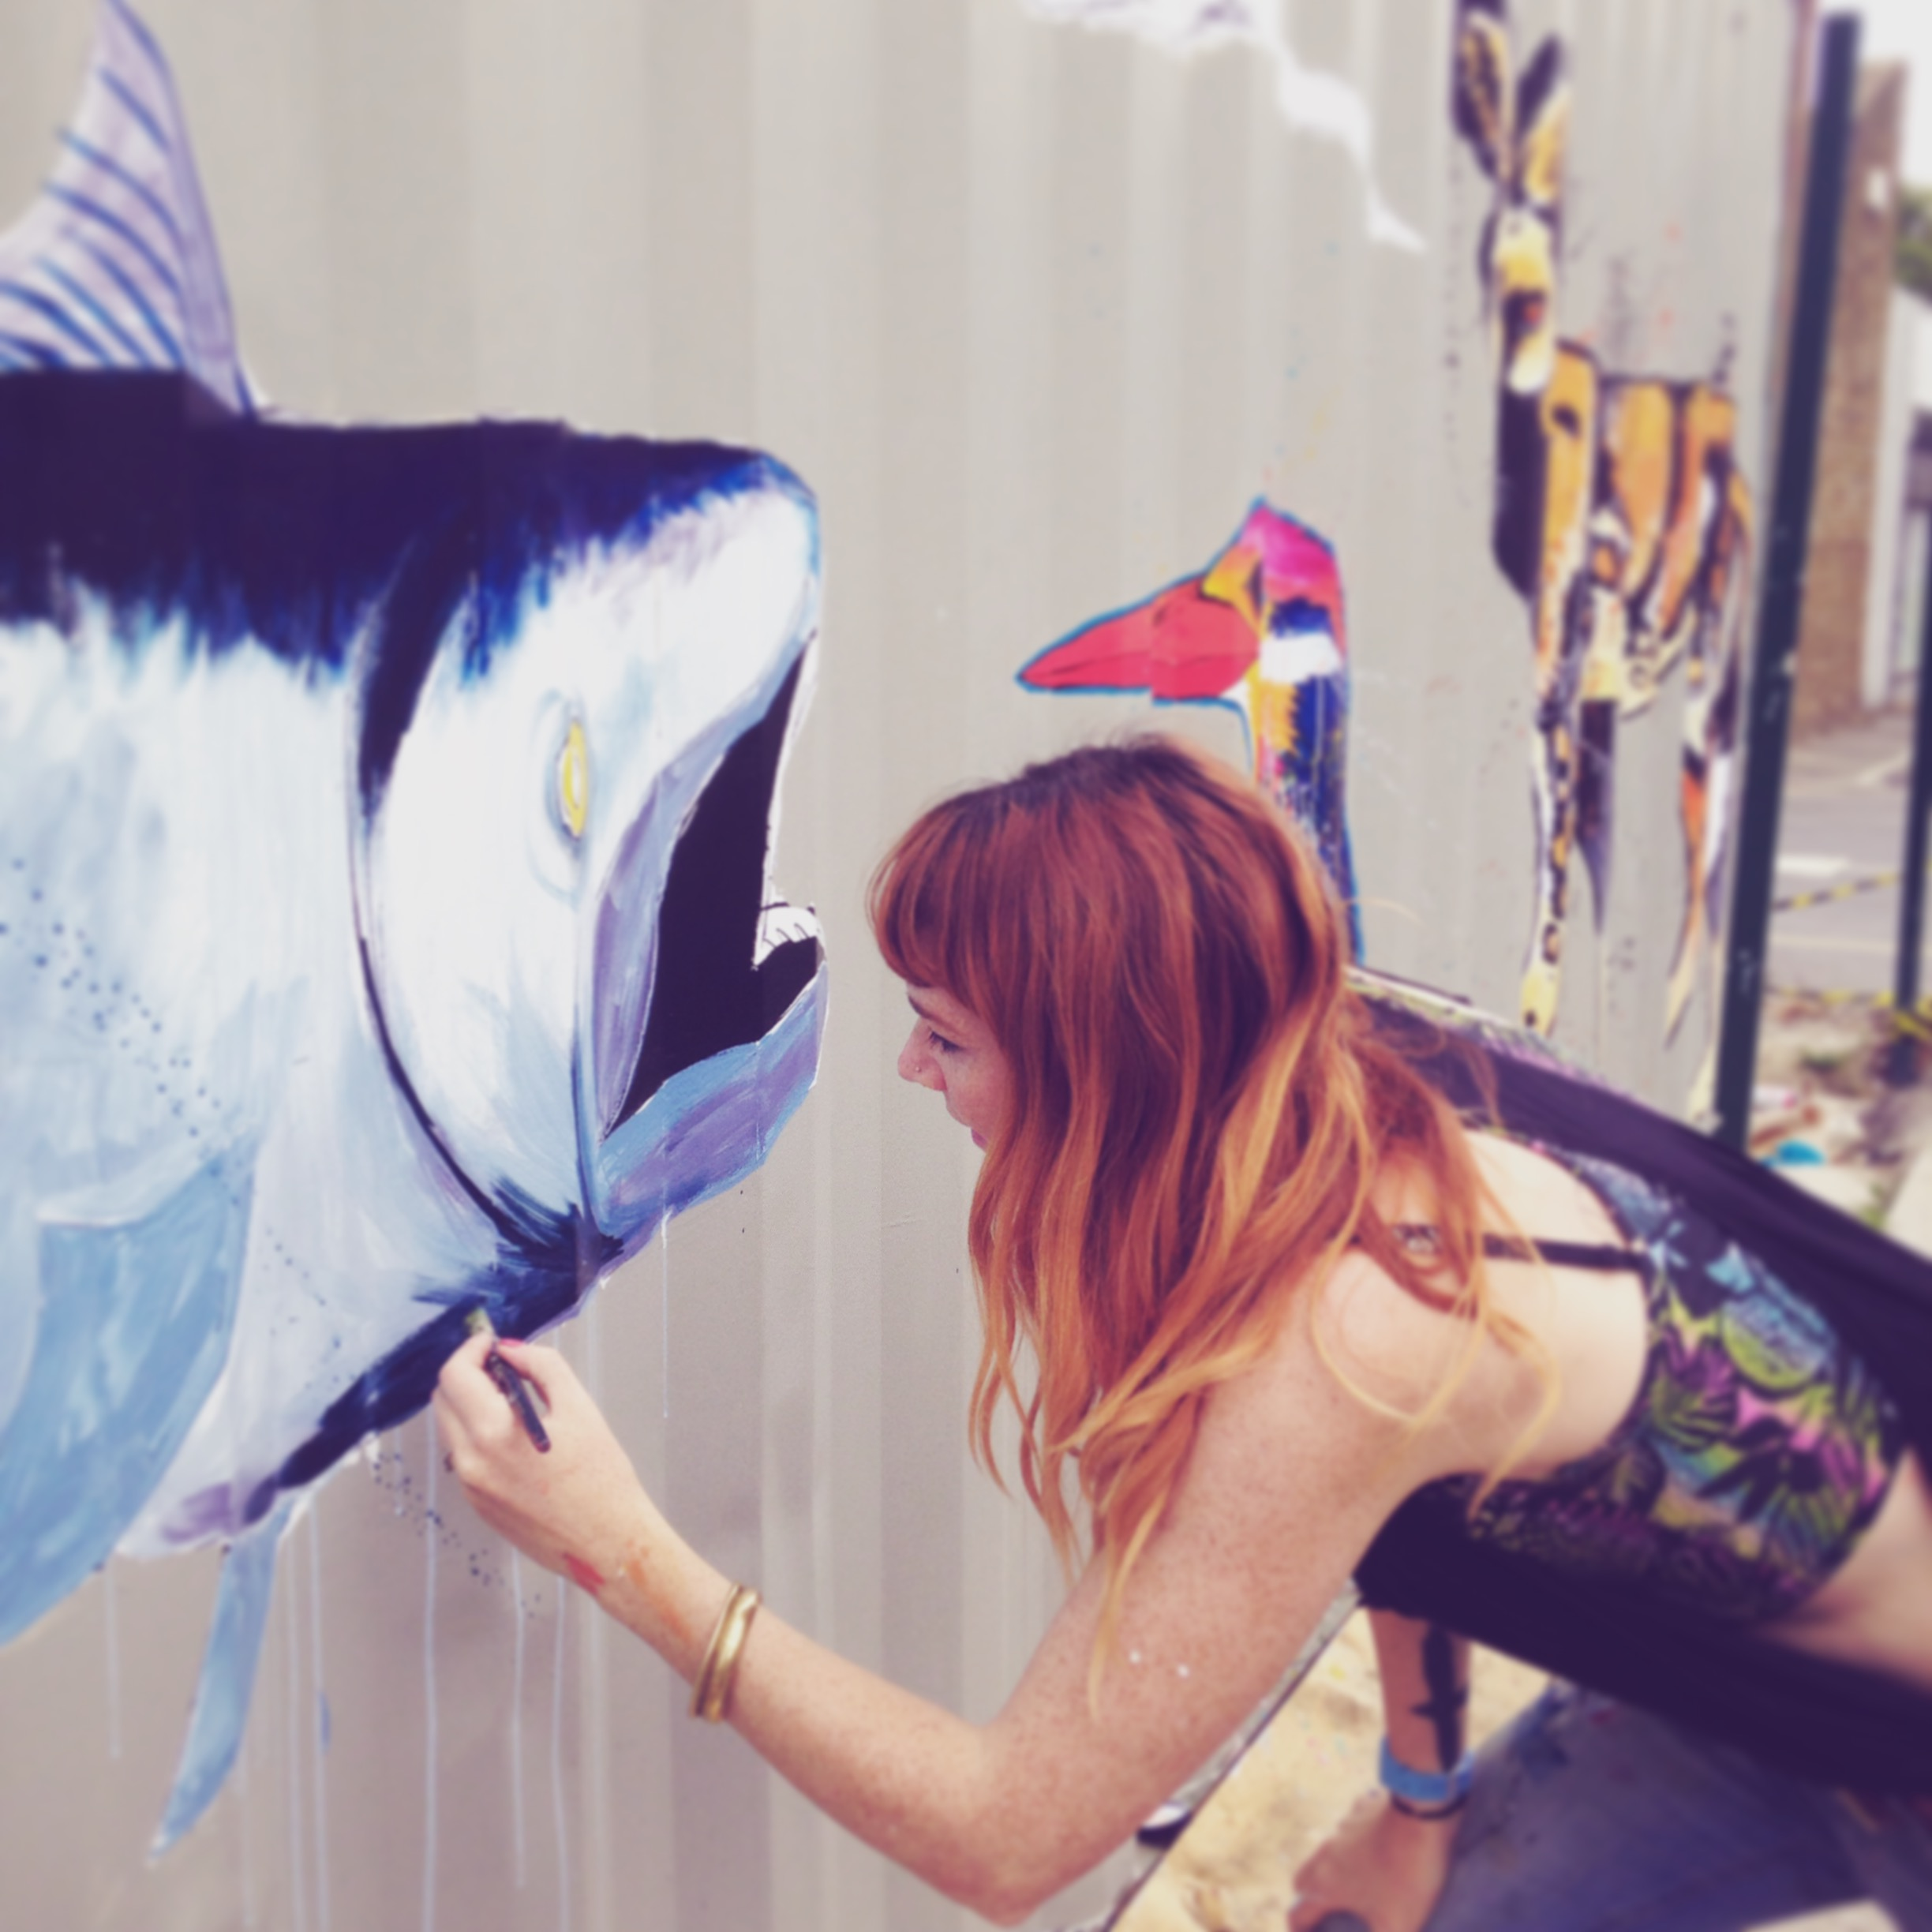 jane-mutiny-painting-a-shark